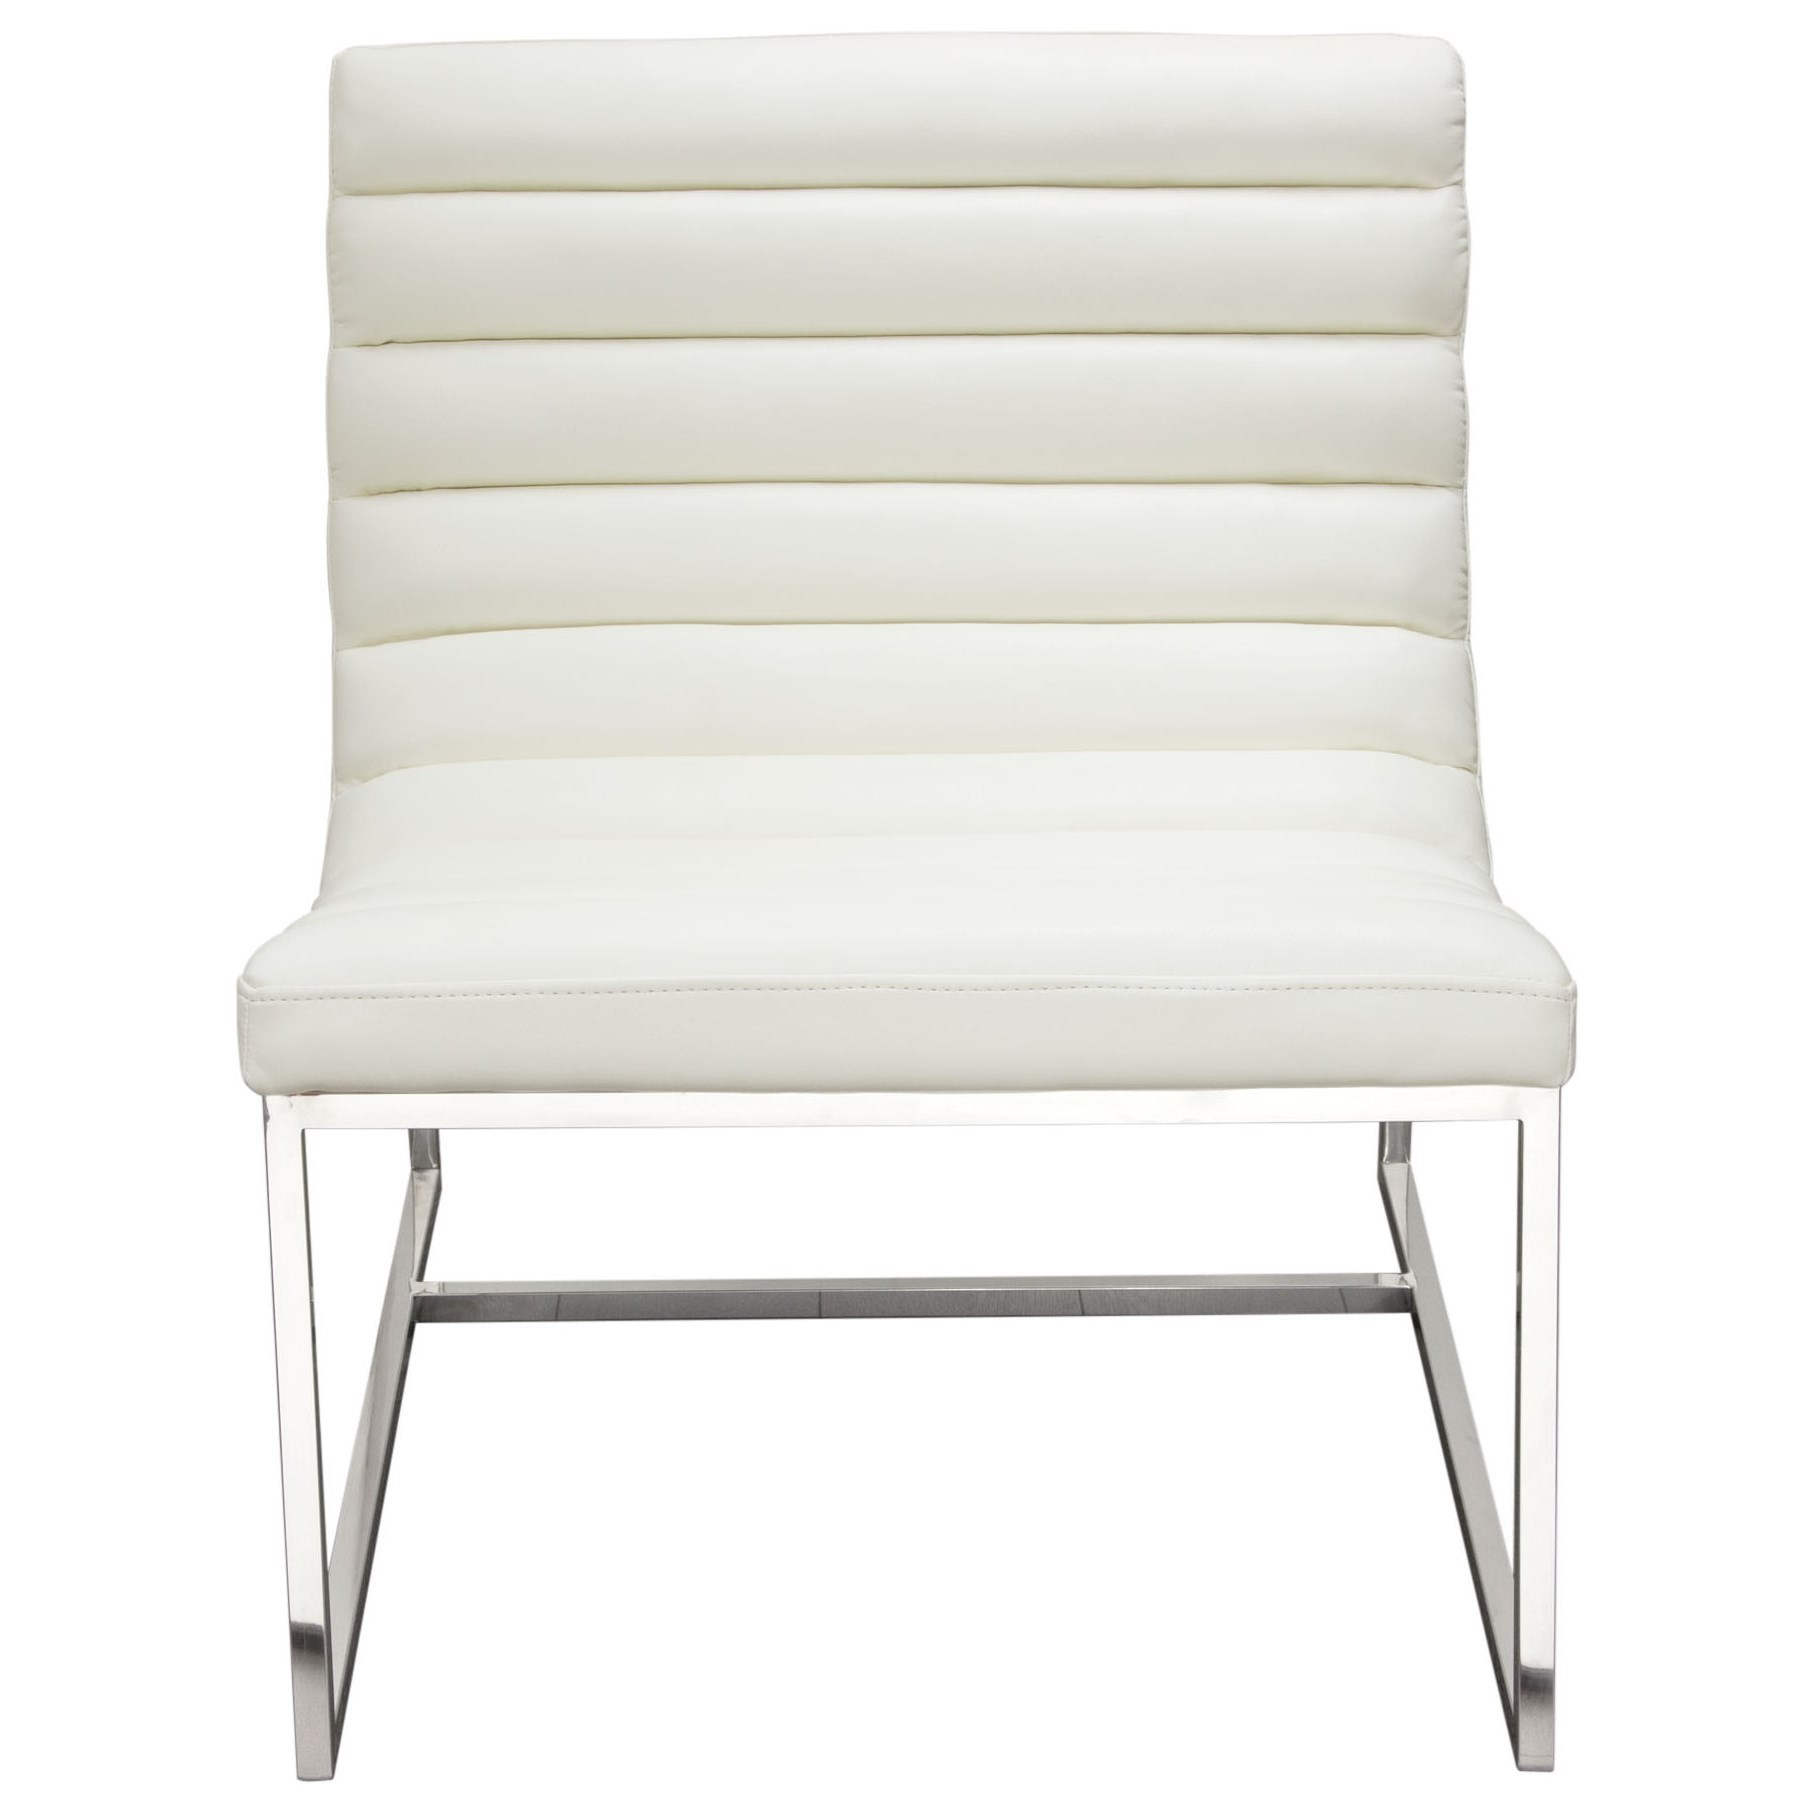 Bardot White Lounge Chair by Diamond Sofa at Red Knot